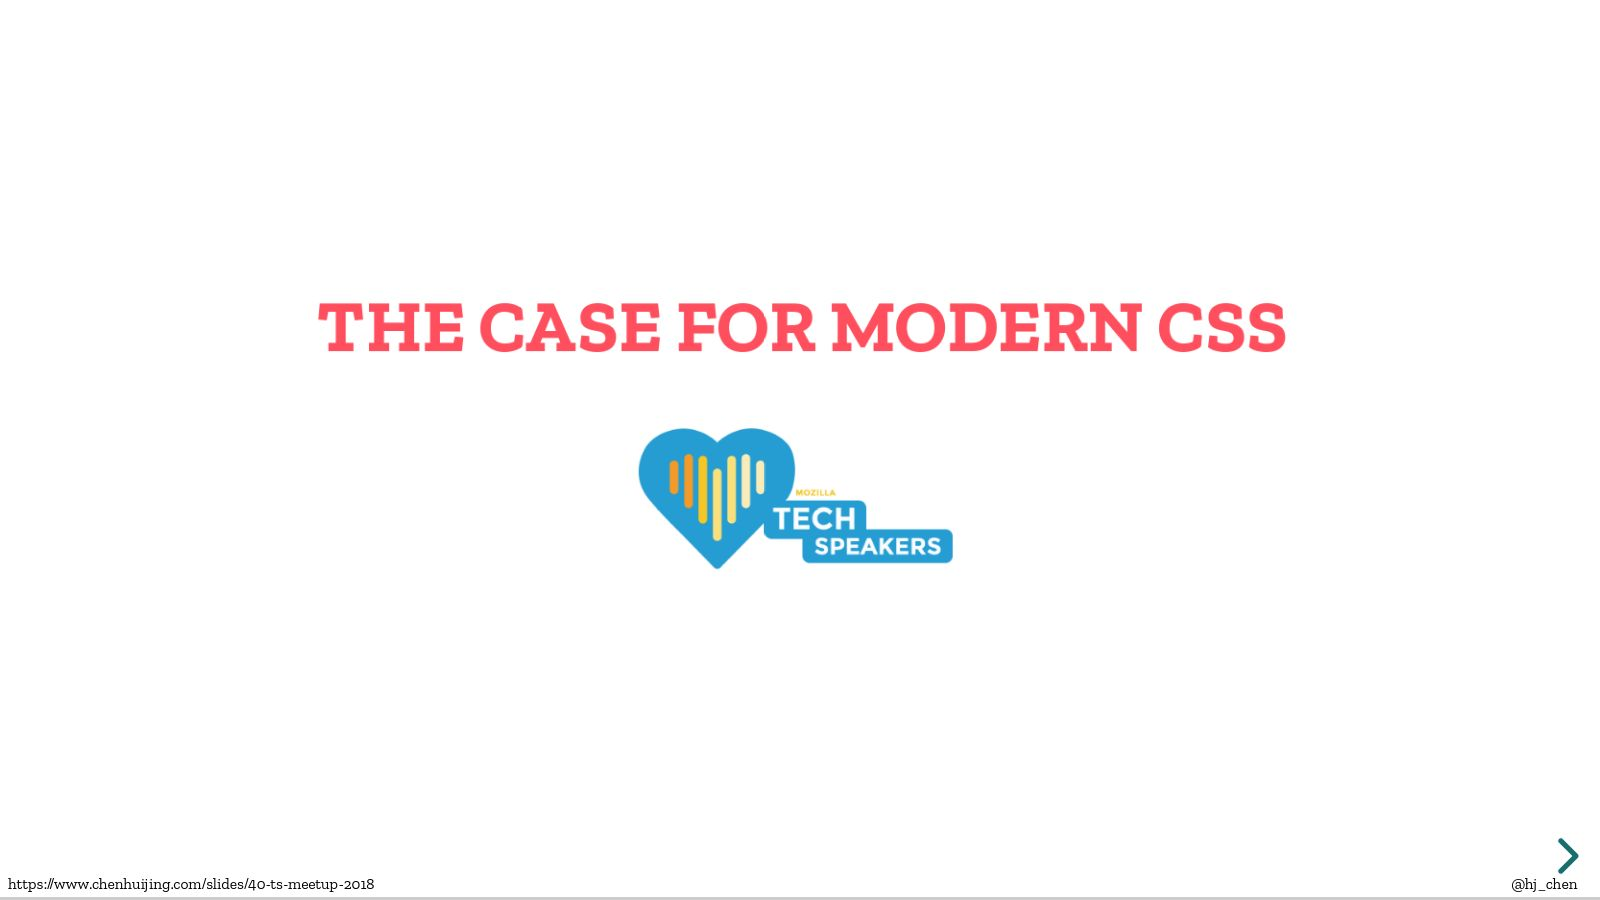 The case for modern CSS